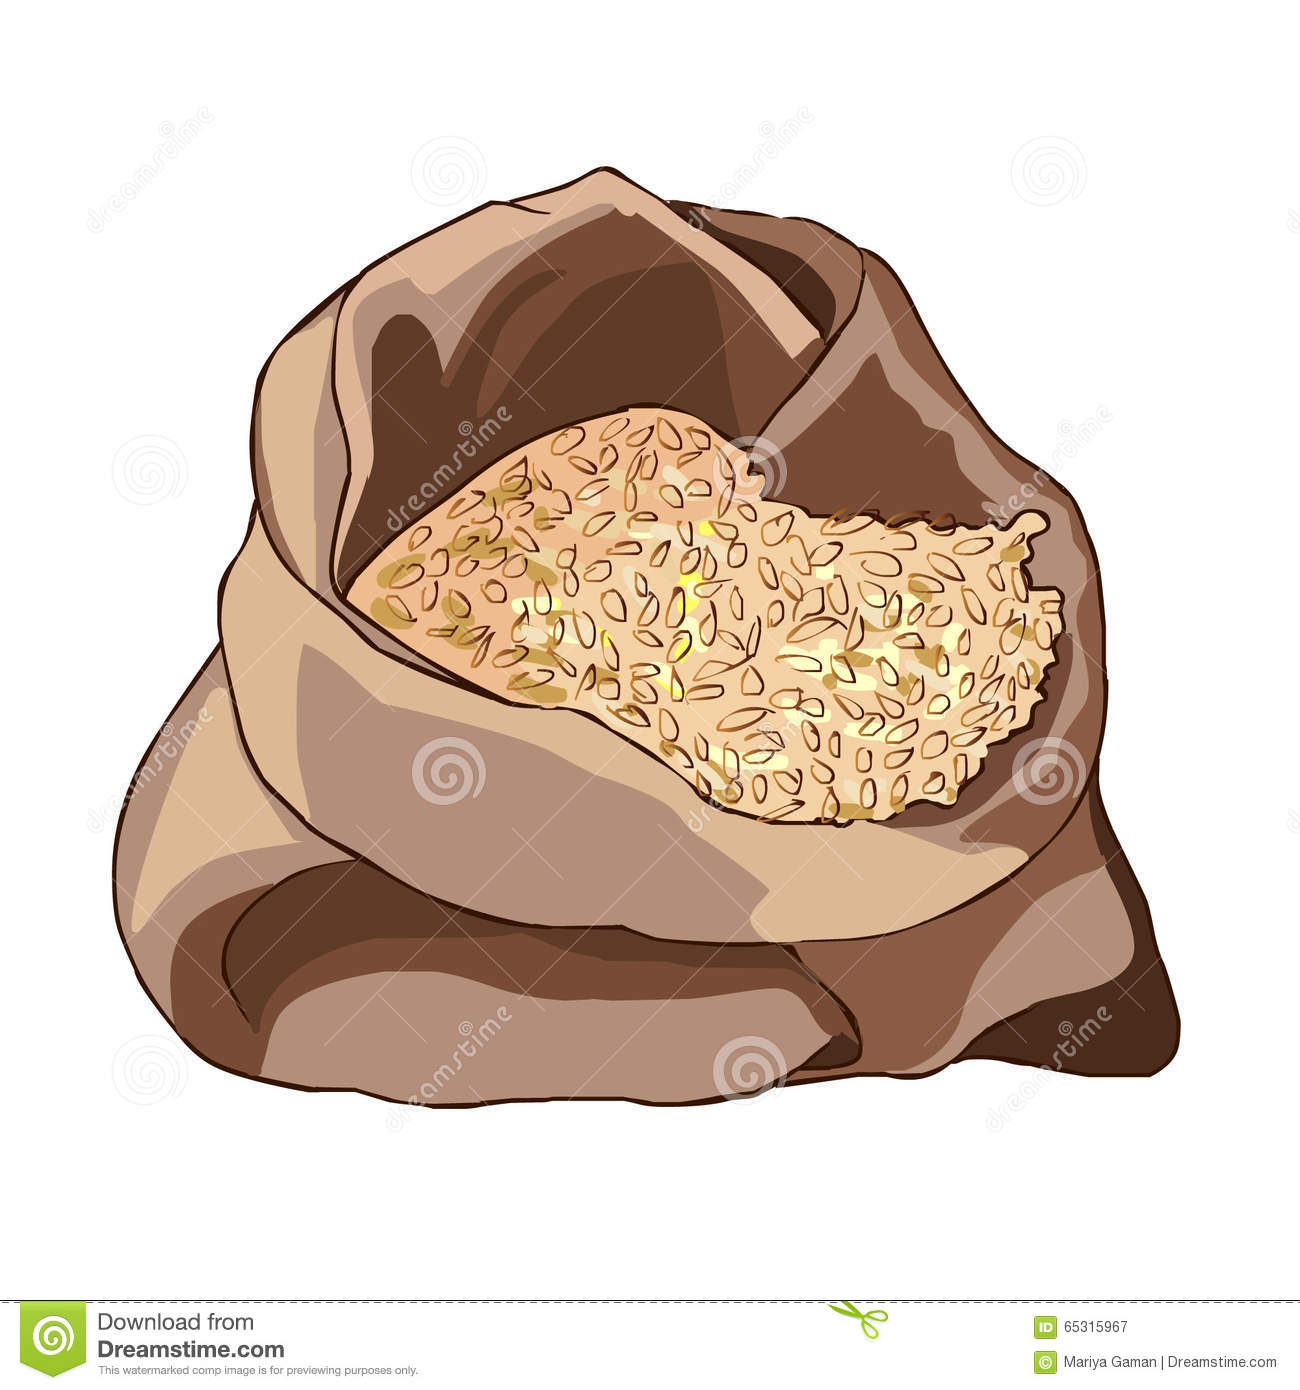 Grain storage clipart - Clipground